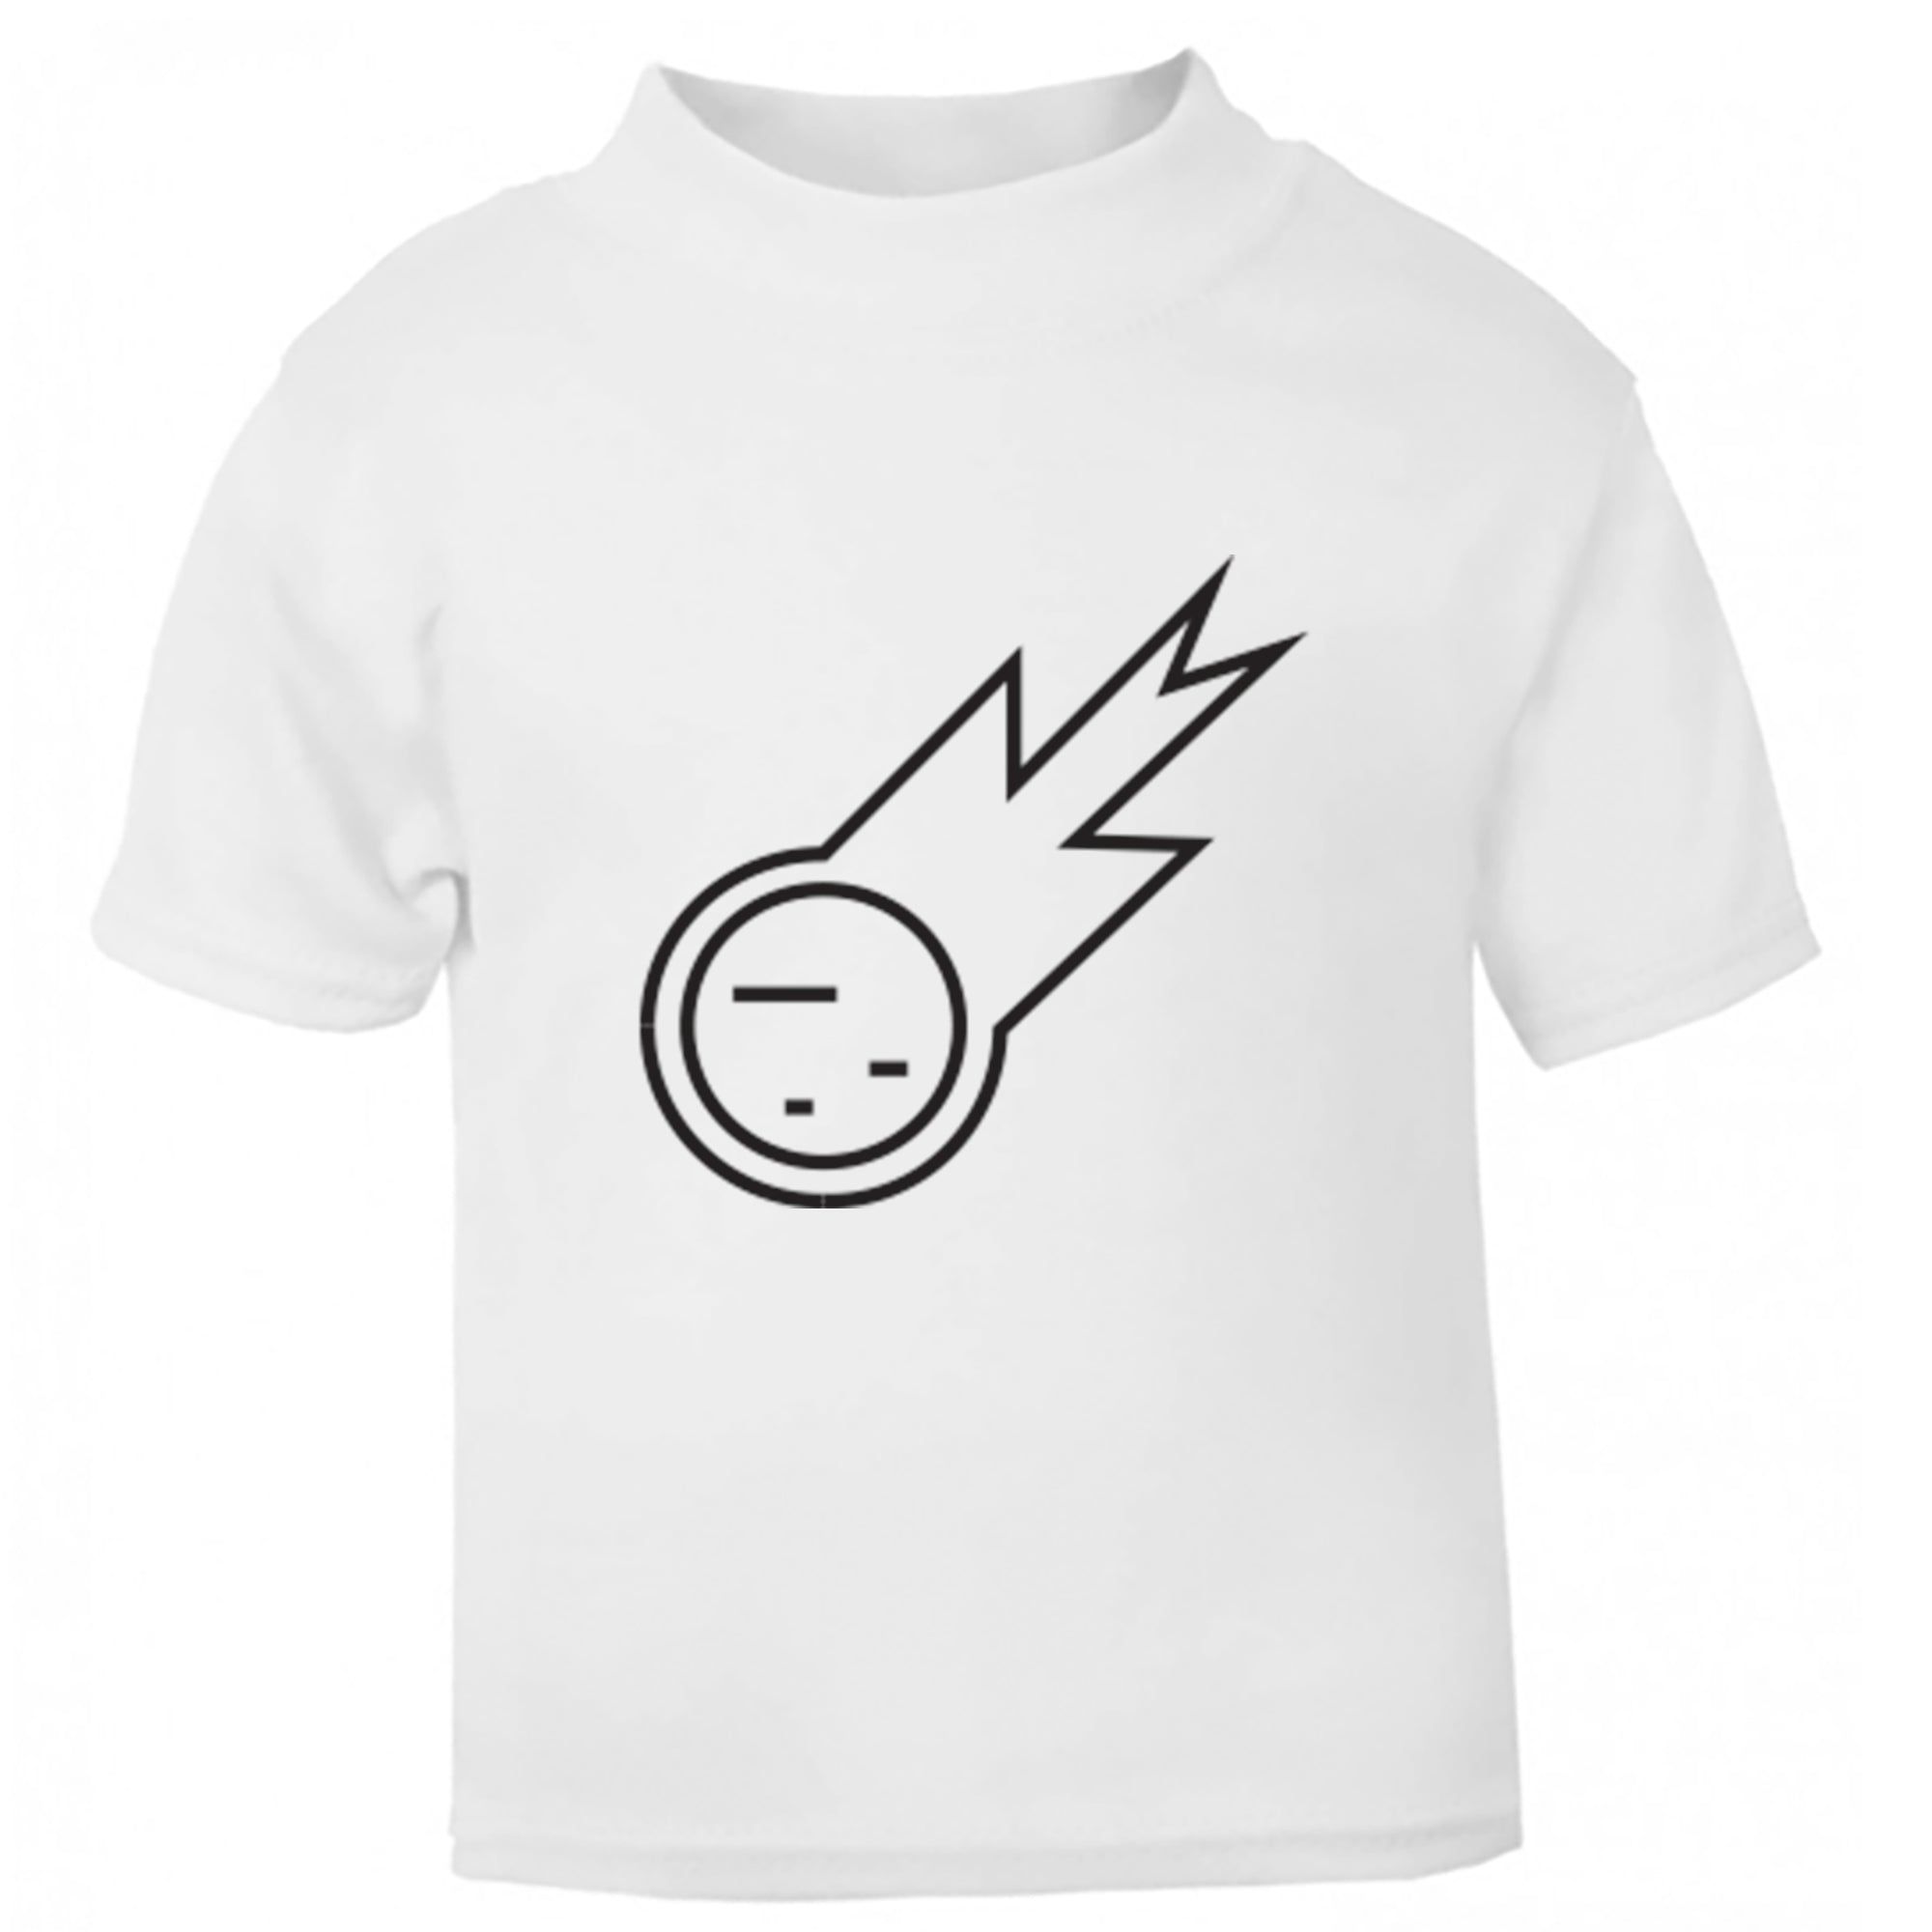 Asteroid Childrens Ages 3/4-12/14 Unisex Fit T-Shirt S0355 - Illustrated Identity Ltd.